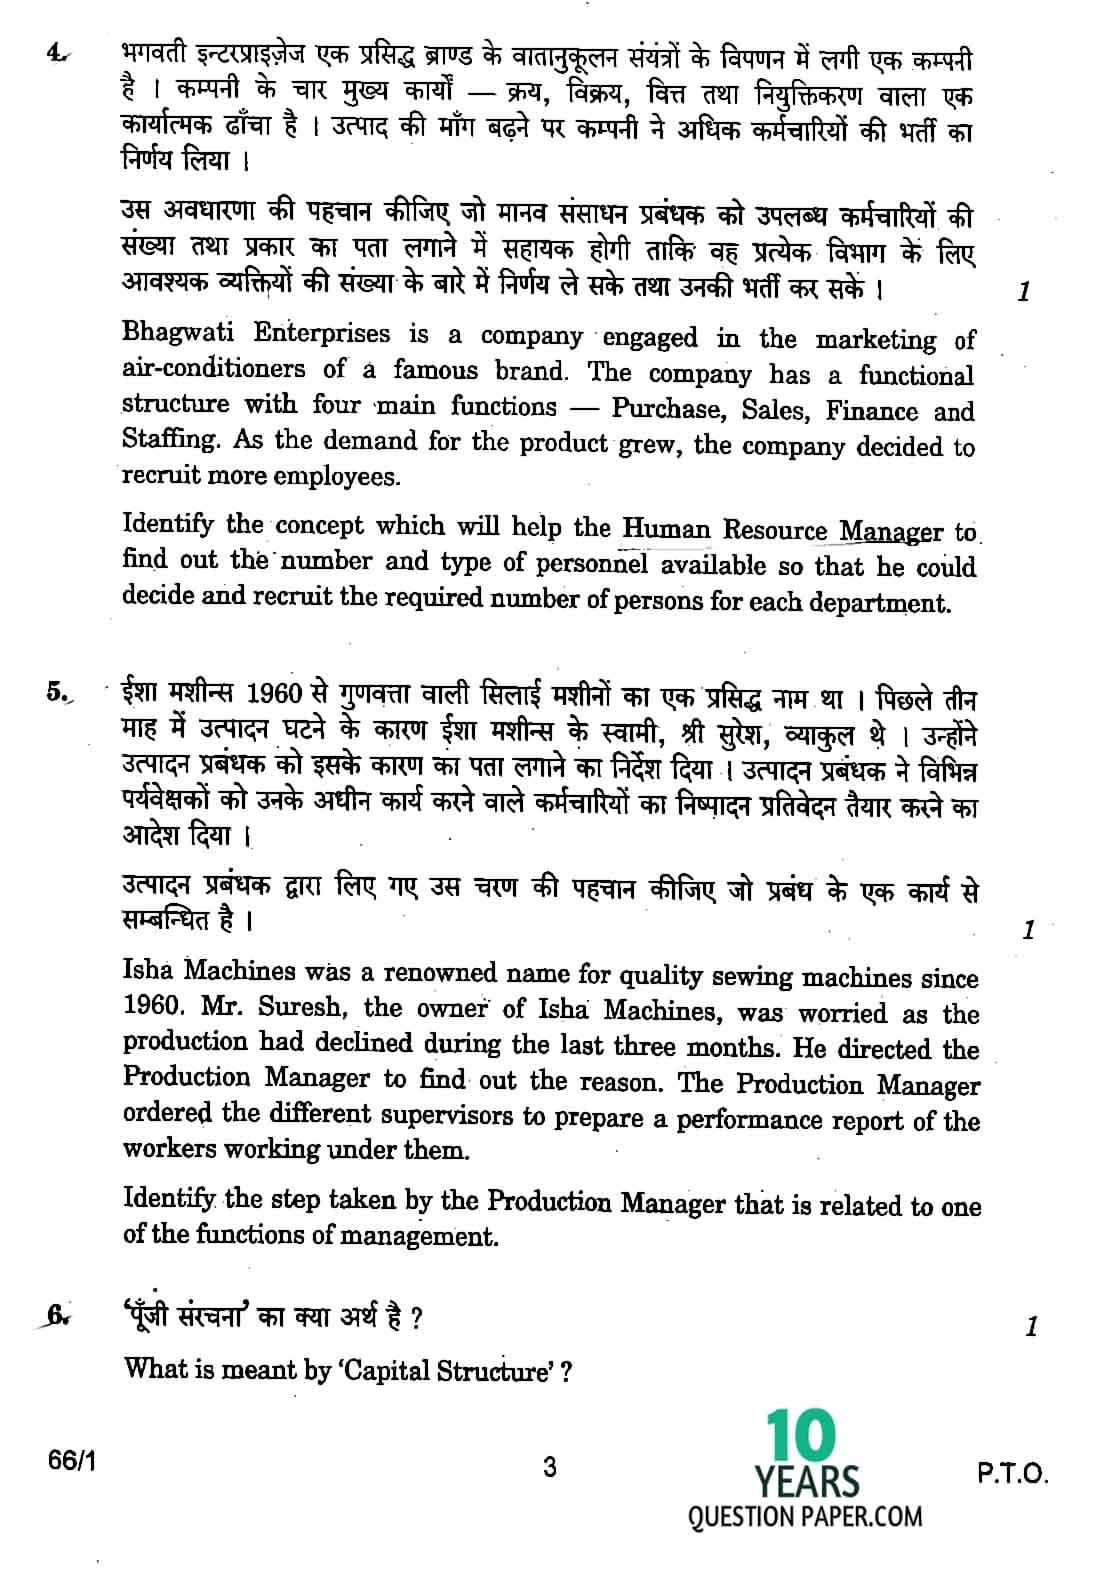 cbse class 12th 2017  Business Studies question paper set-1